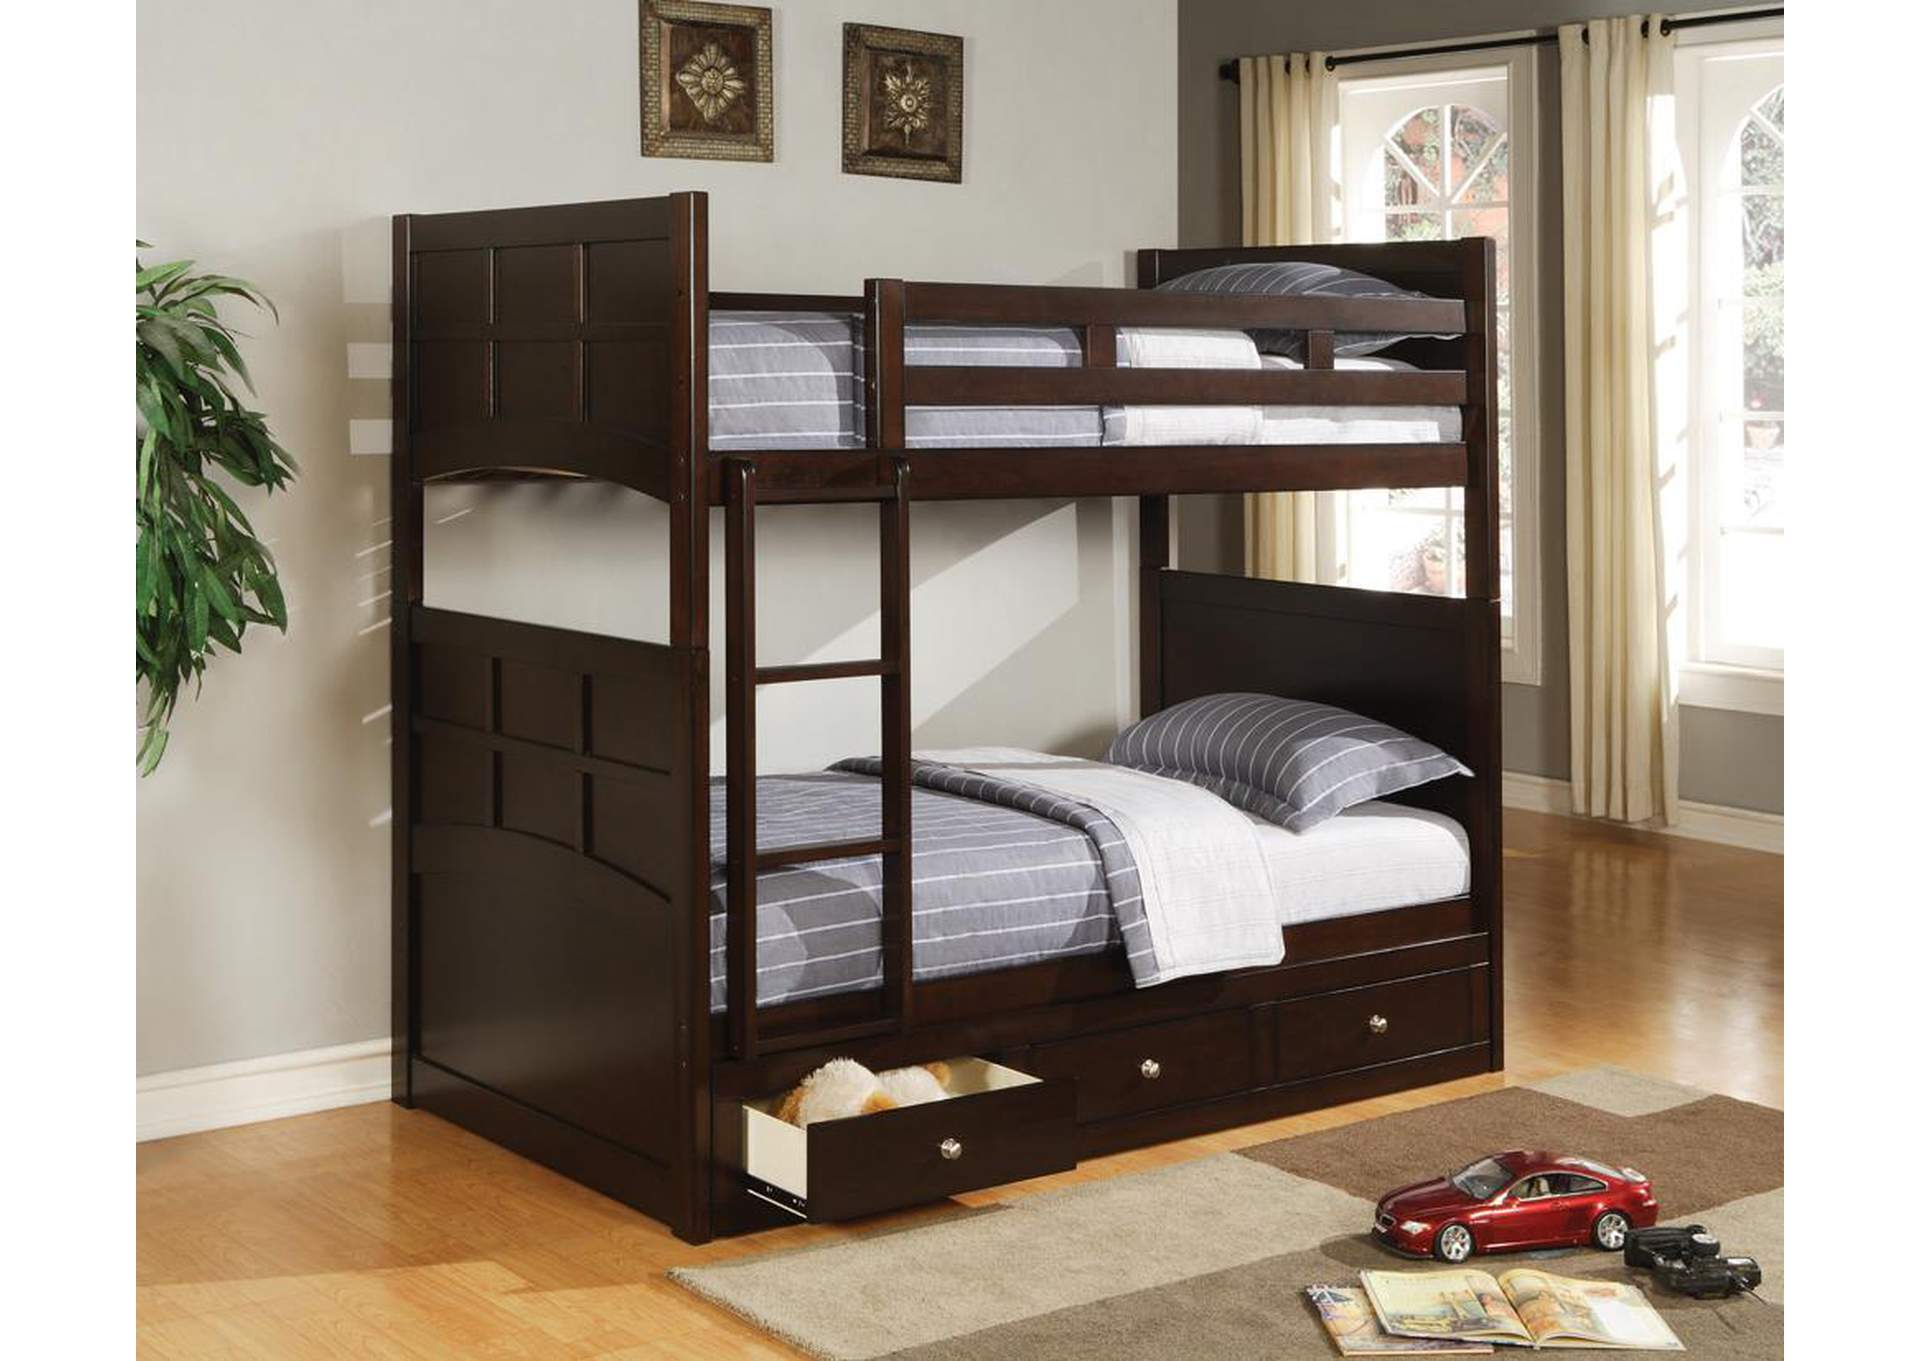 Jasper Twin Cappuccino Bunk Bed,Coaster Furniture